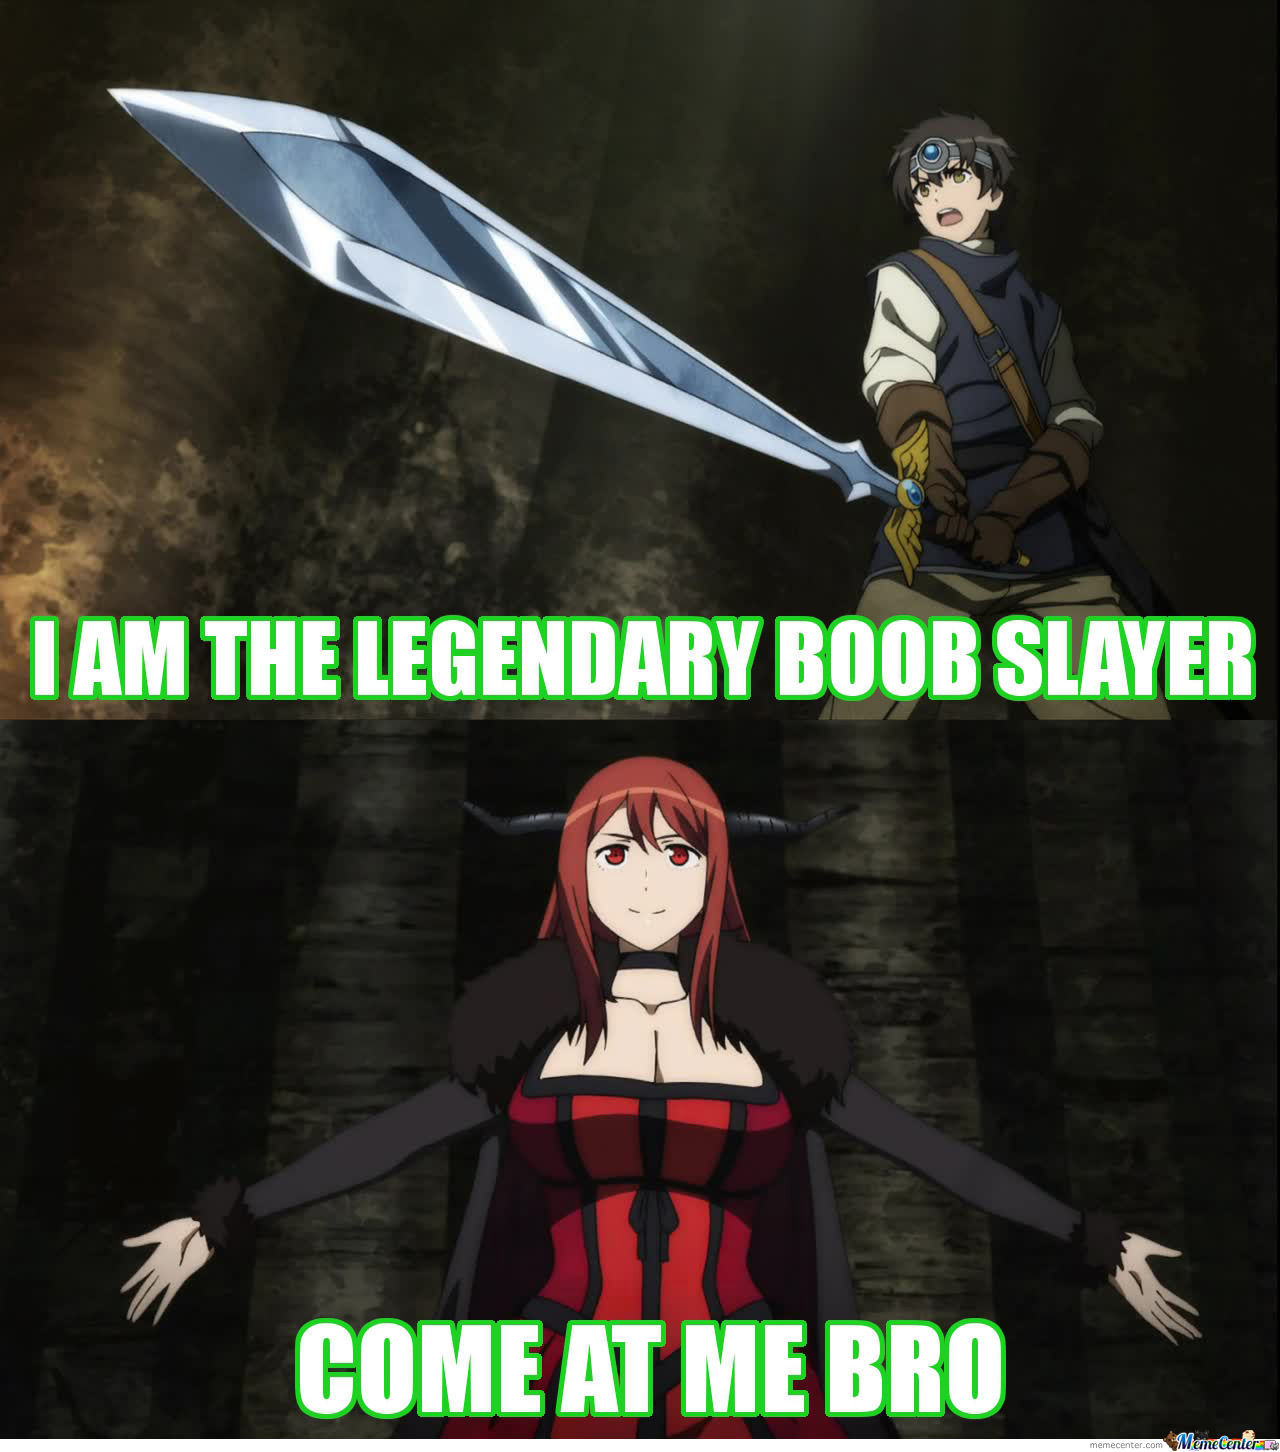 The Boob Slayer